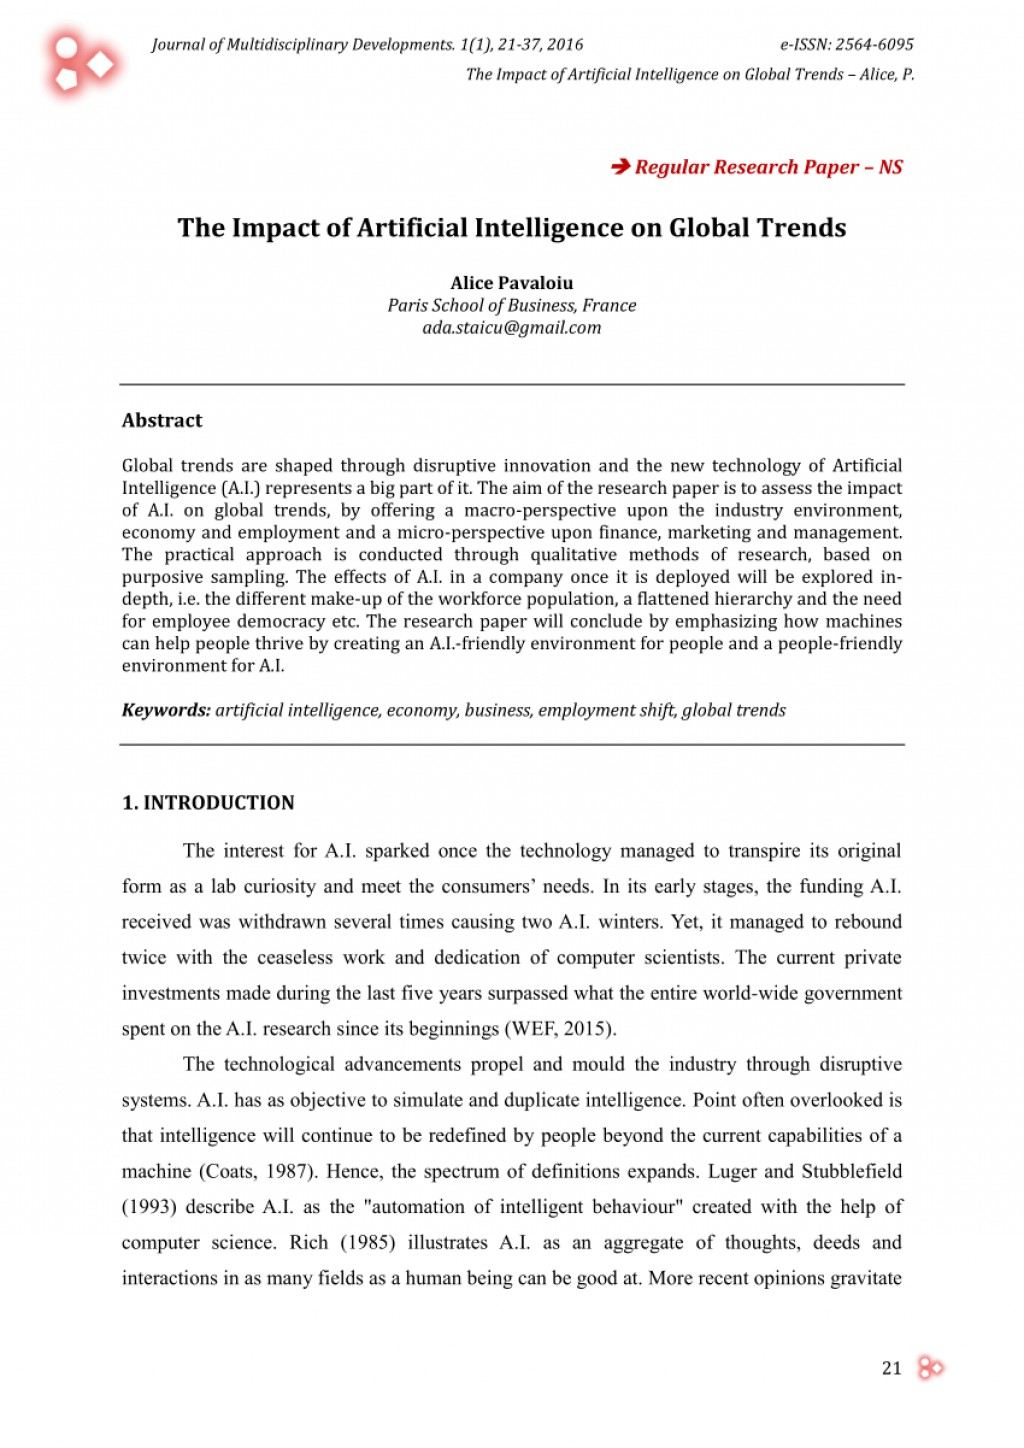 001 Research Paper Artificial Intelligence Papers Singular 2016 Large